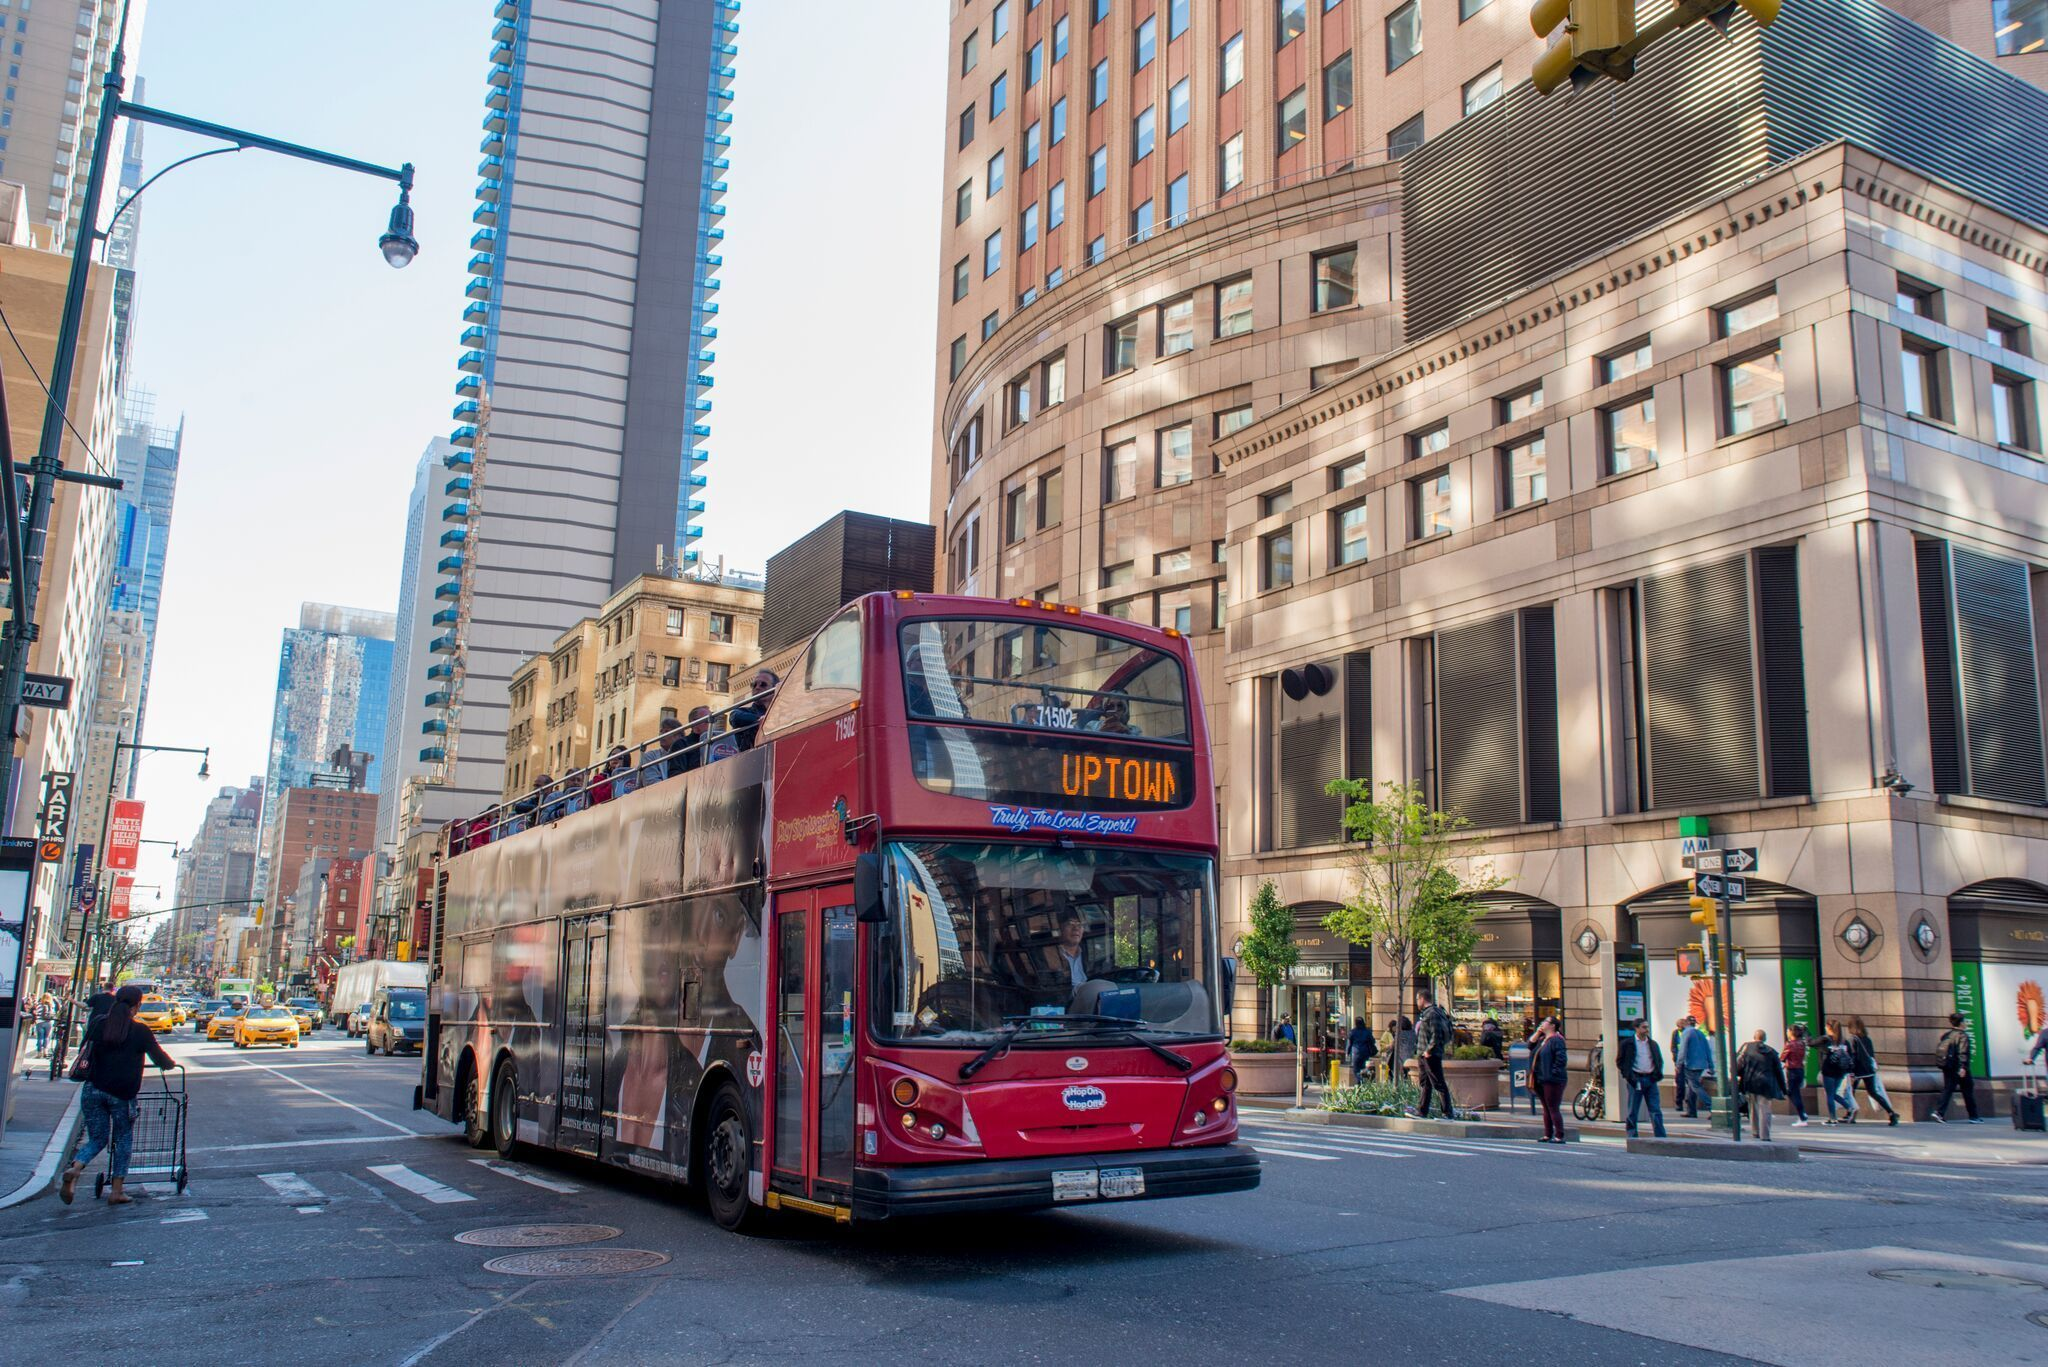 New York Hop On Hop Off Bus Tour and Attraction Entry